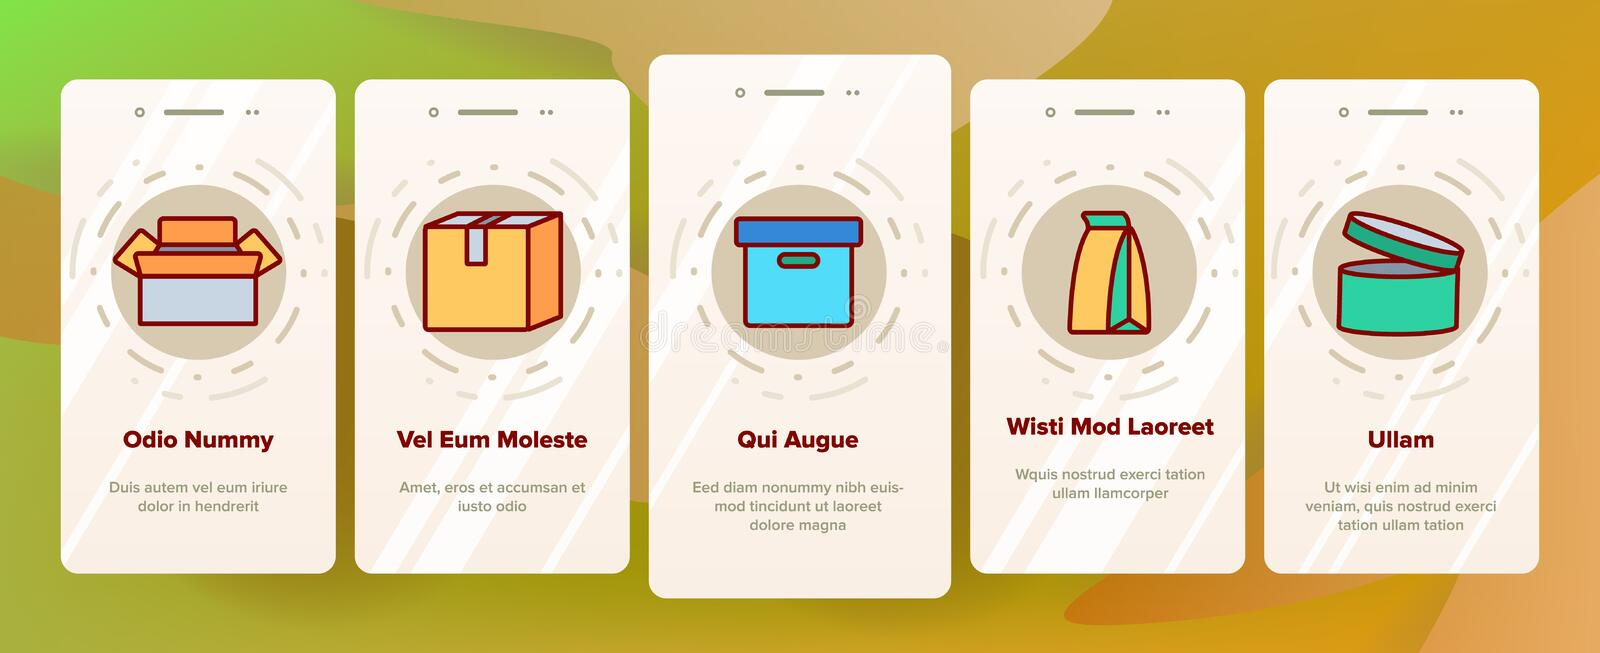 Packaging Types Vector Color Onboarding. Packaging Types Vector Onboarding Mobile App Page Screen. Packaging Boxes, Shopping Bags. Cardboard, Paper, Recyclable vector illustration